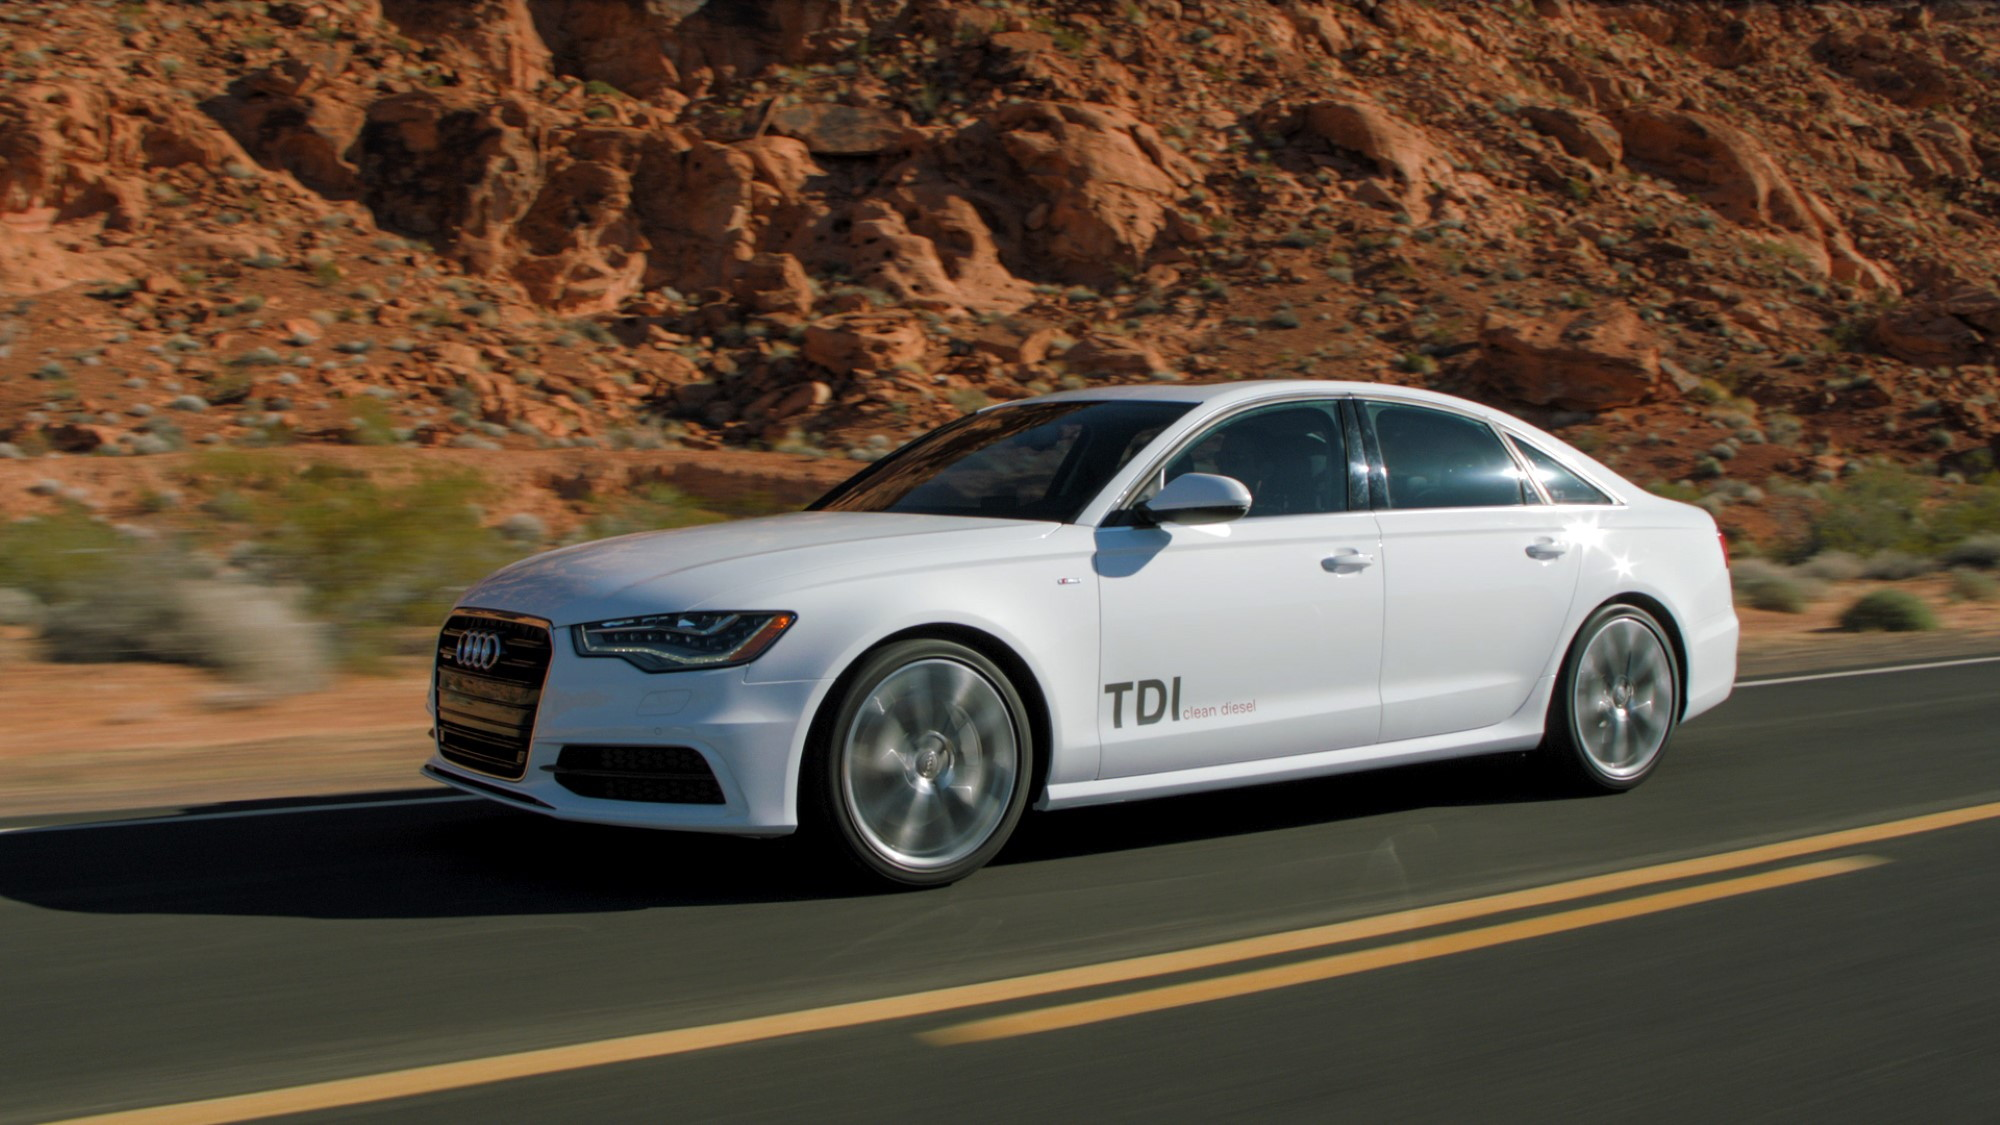 Vw Dirty Diesel Scandal Expands To Audi 2 1m Cars Affected